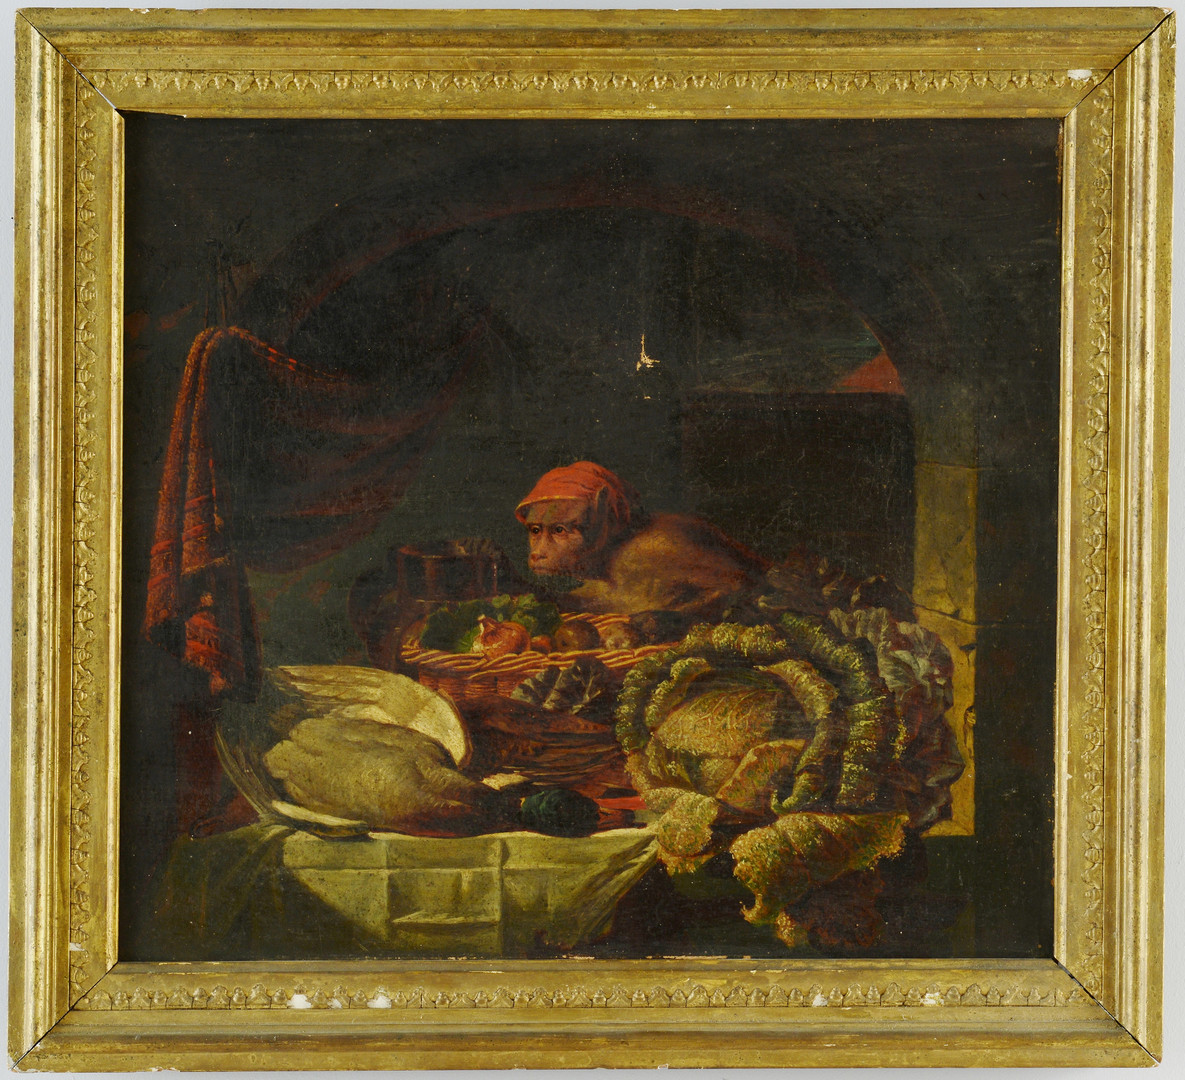 Lot 194: Thomas Waterman Wood, Still Life with Monkey (afte